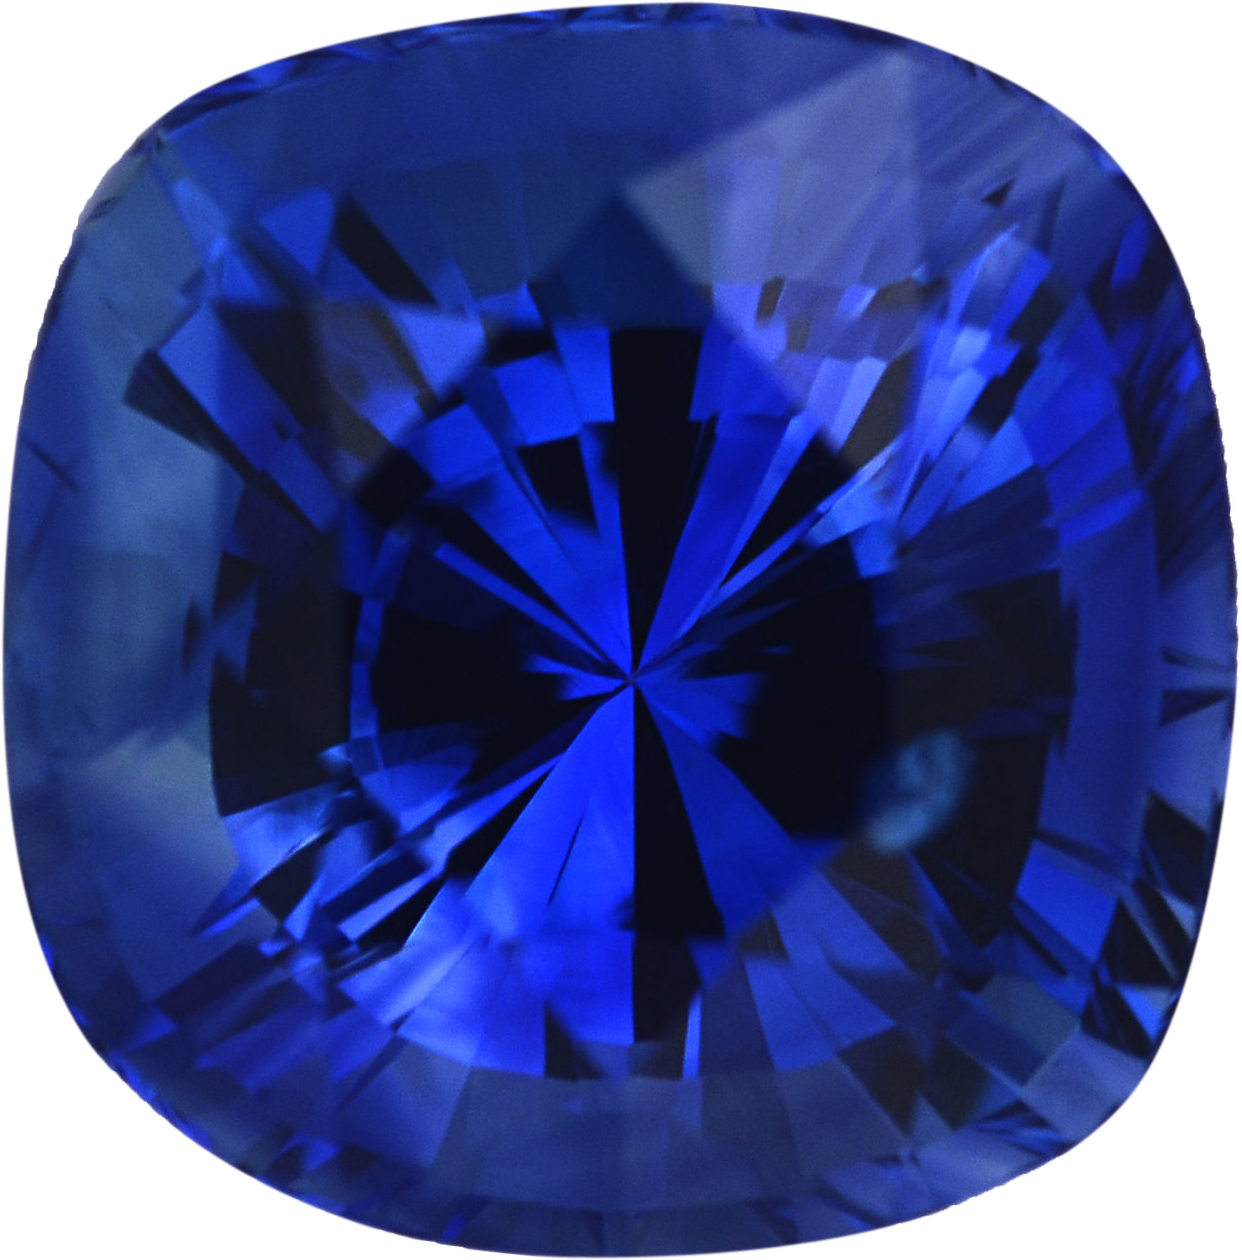 Good Looking Sapphire Loose Gem in Antique Square Cut, Vibrant Violet Blue, 6.16 x 6.02  mm, 1.38 Carats